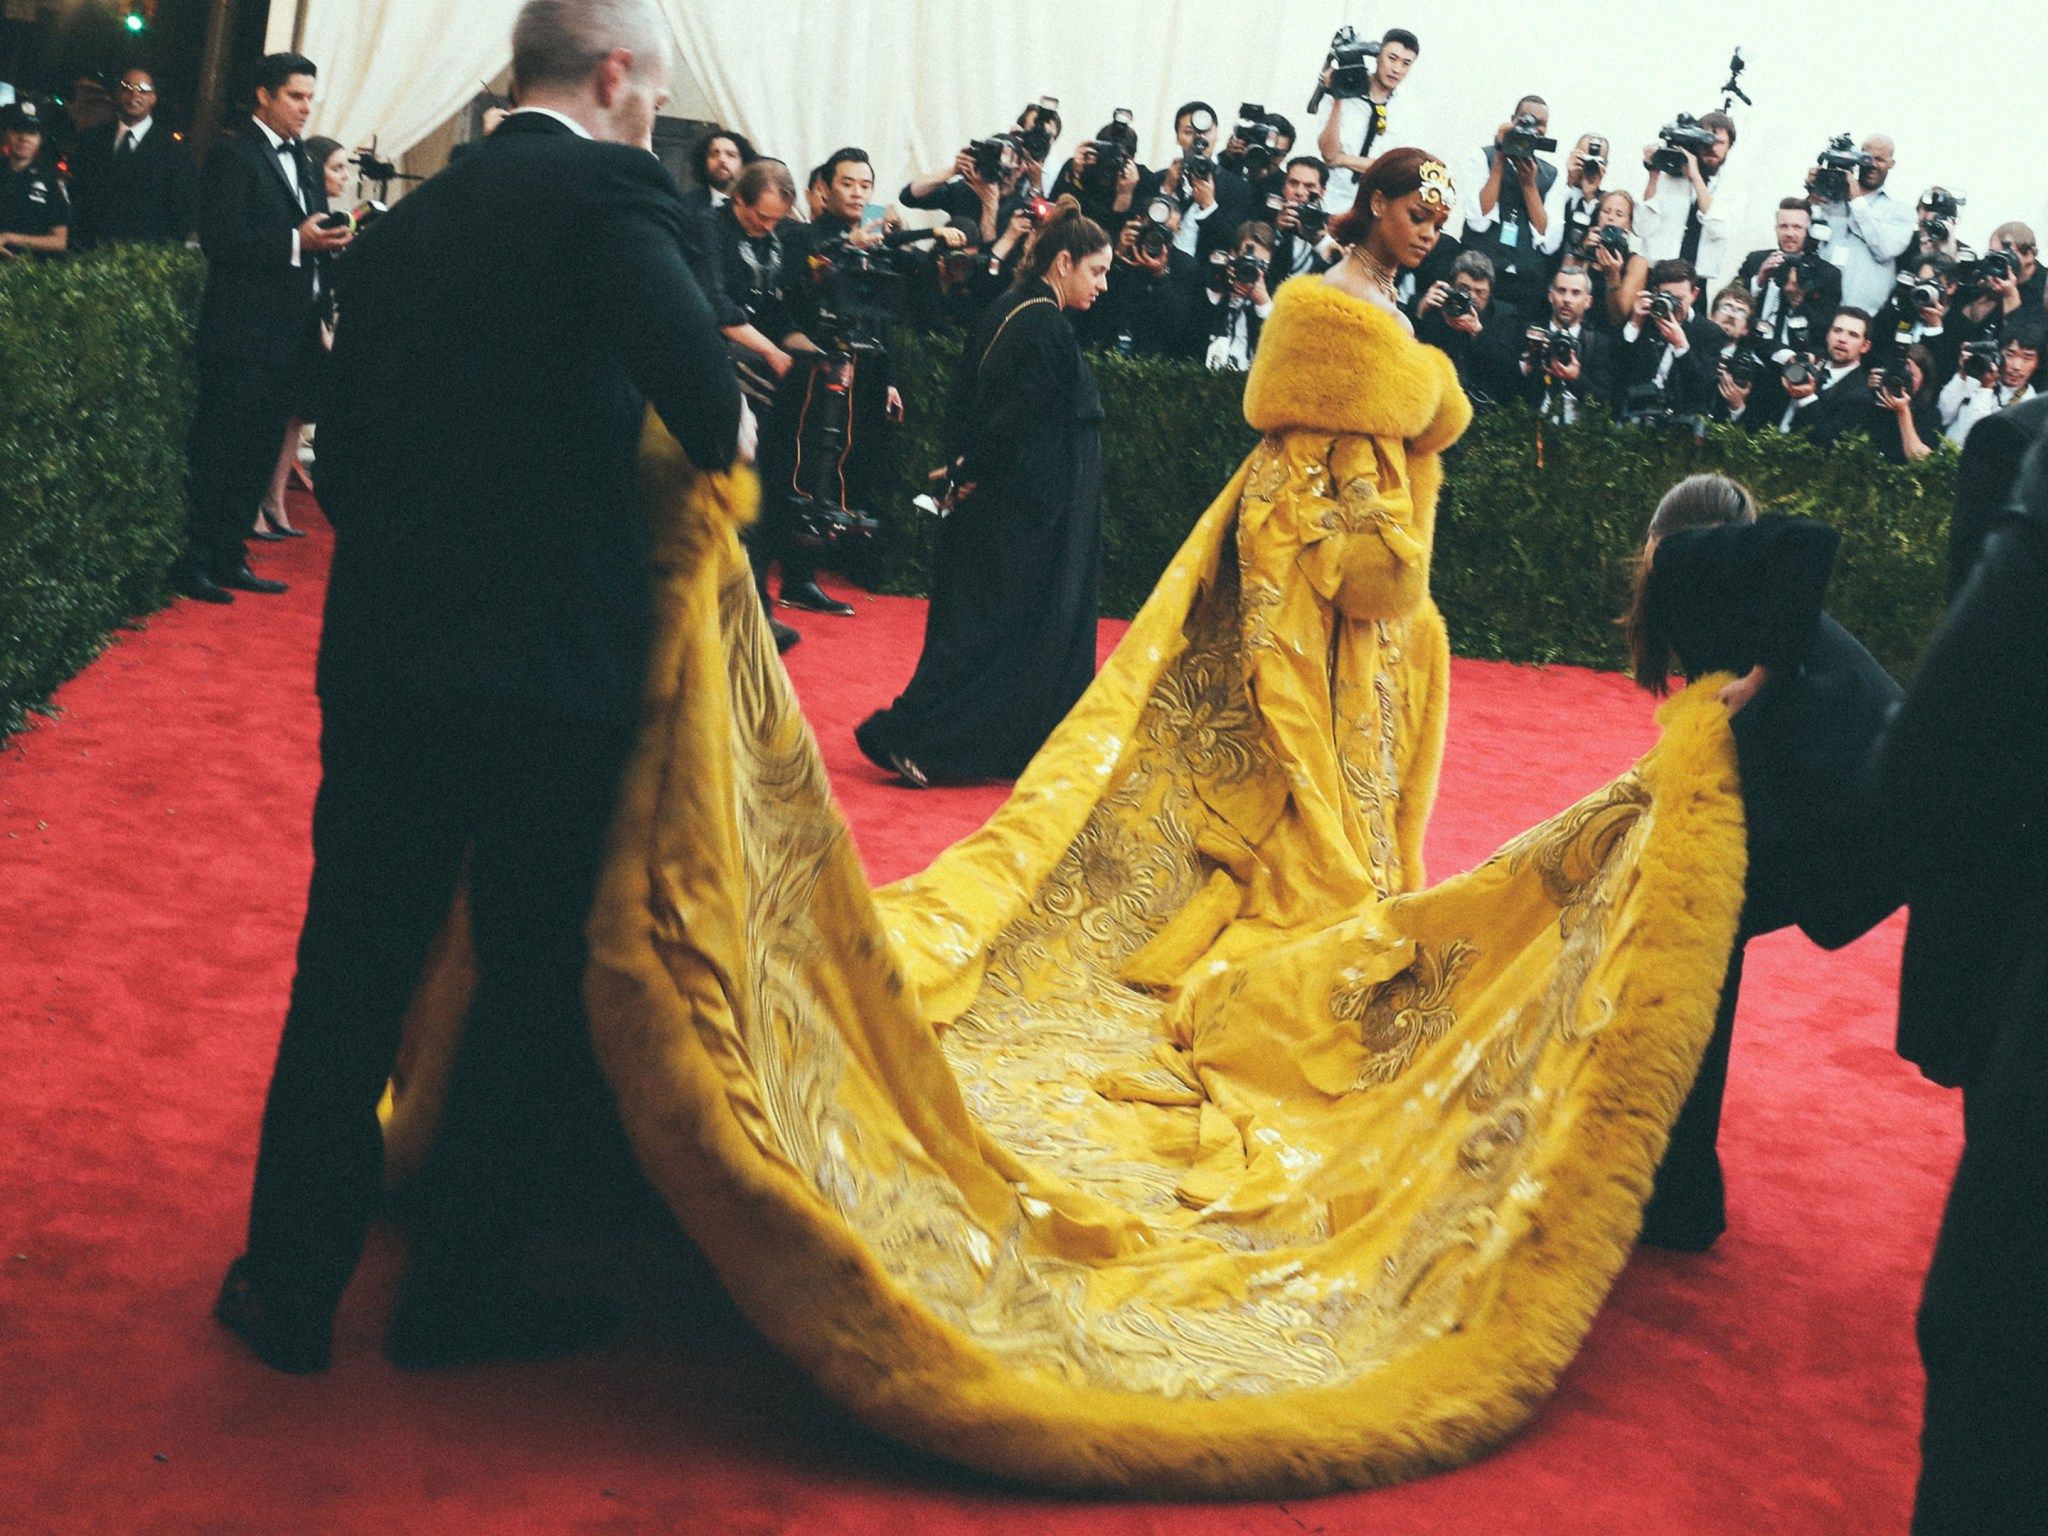 A woman wearing a long flowing yellow dress at a red carpet event.